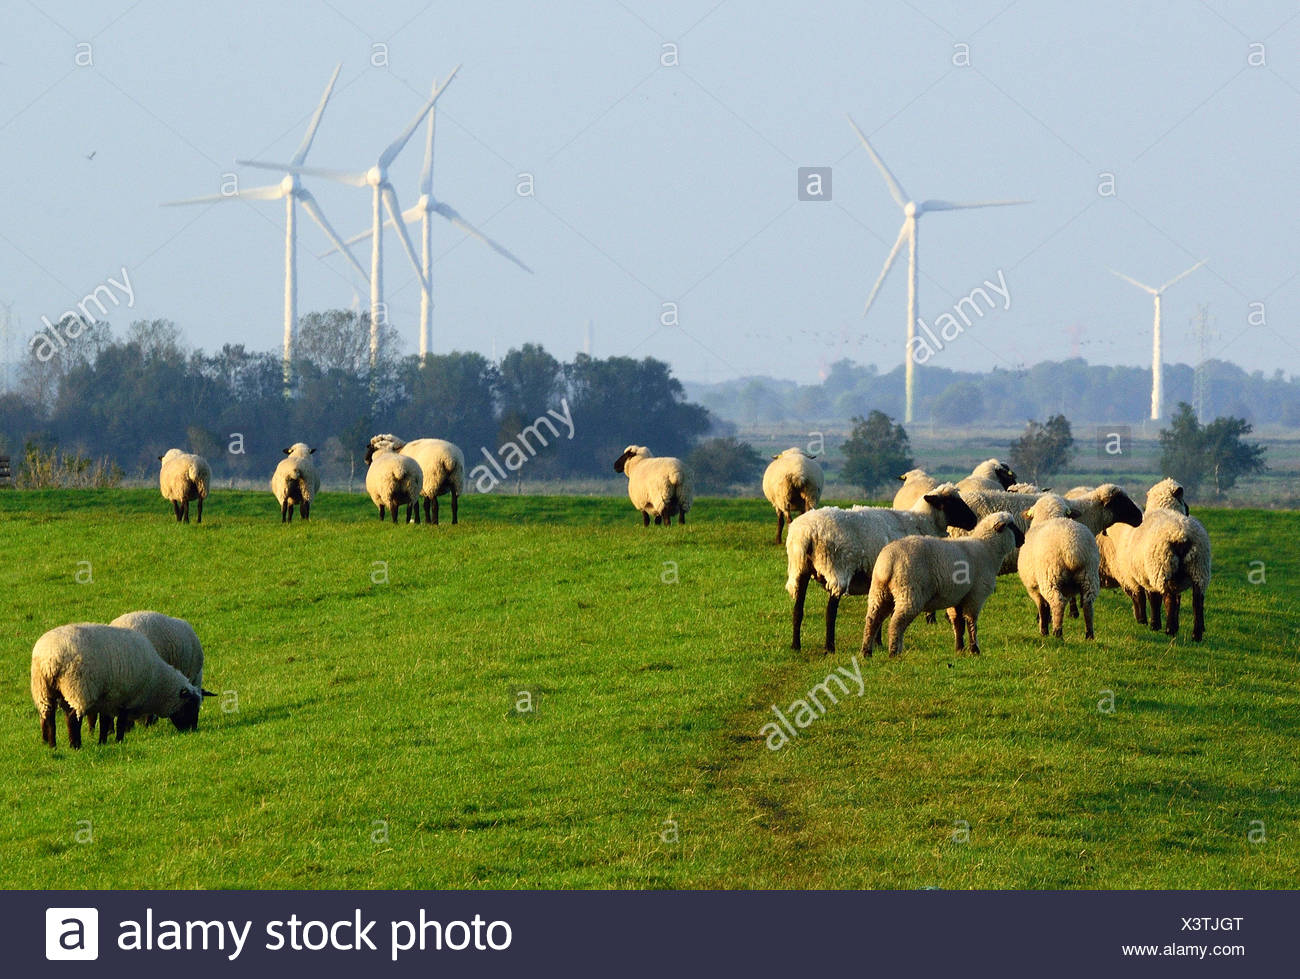 flock of sheep, wind wheels in the background, Germany - Stock Image